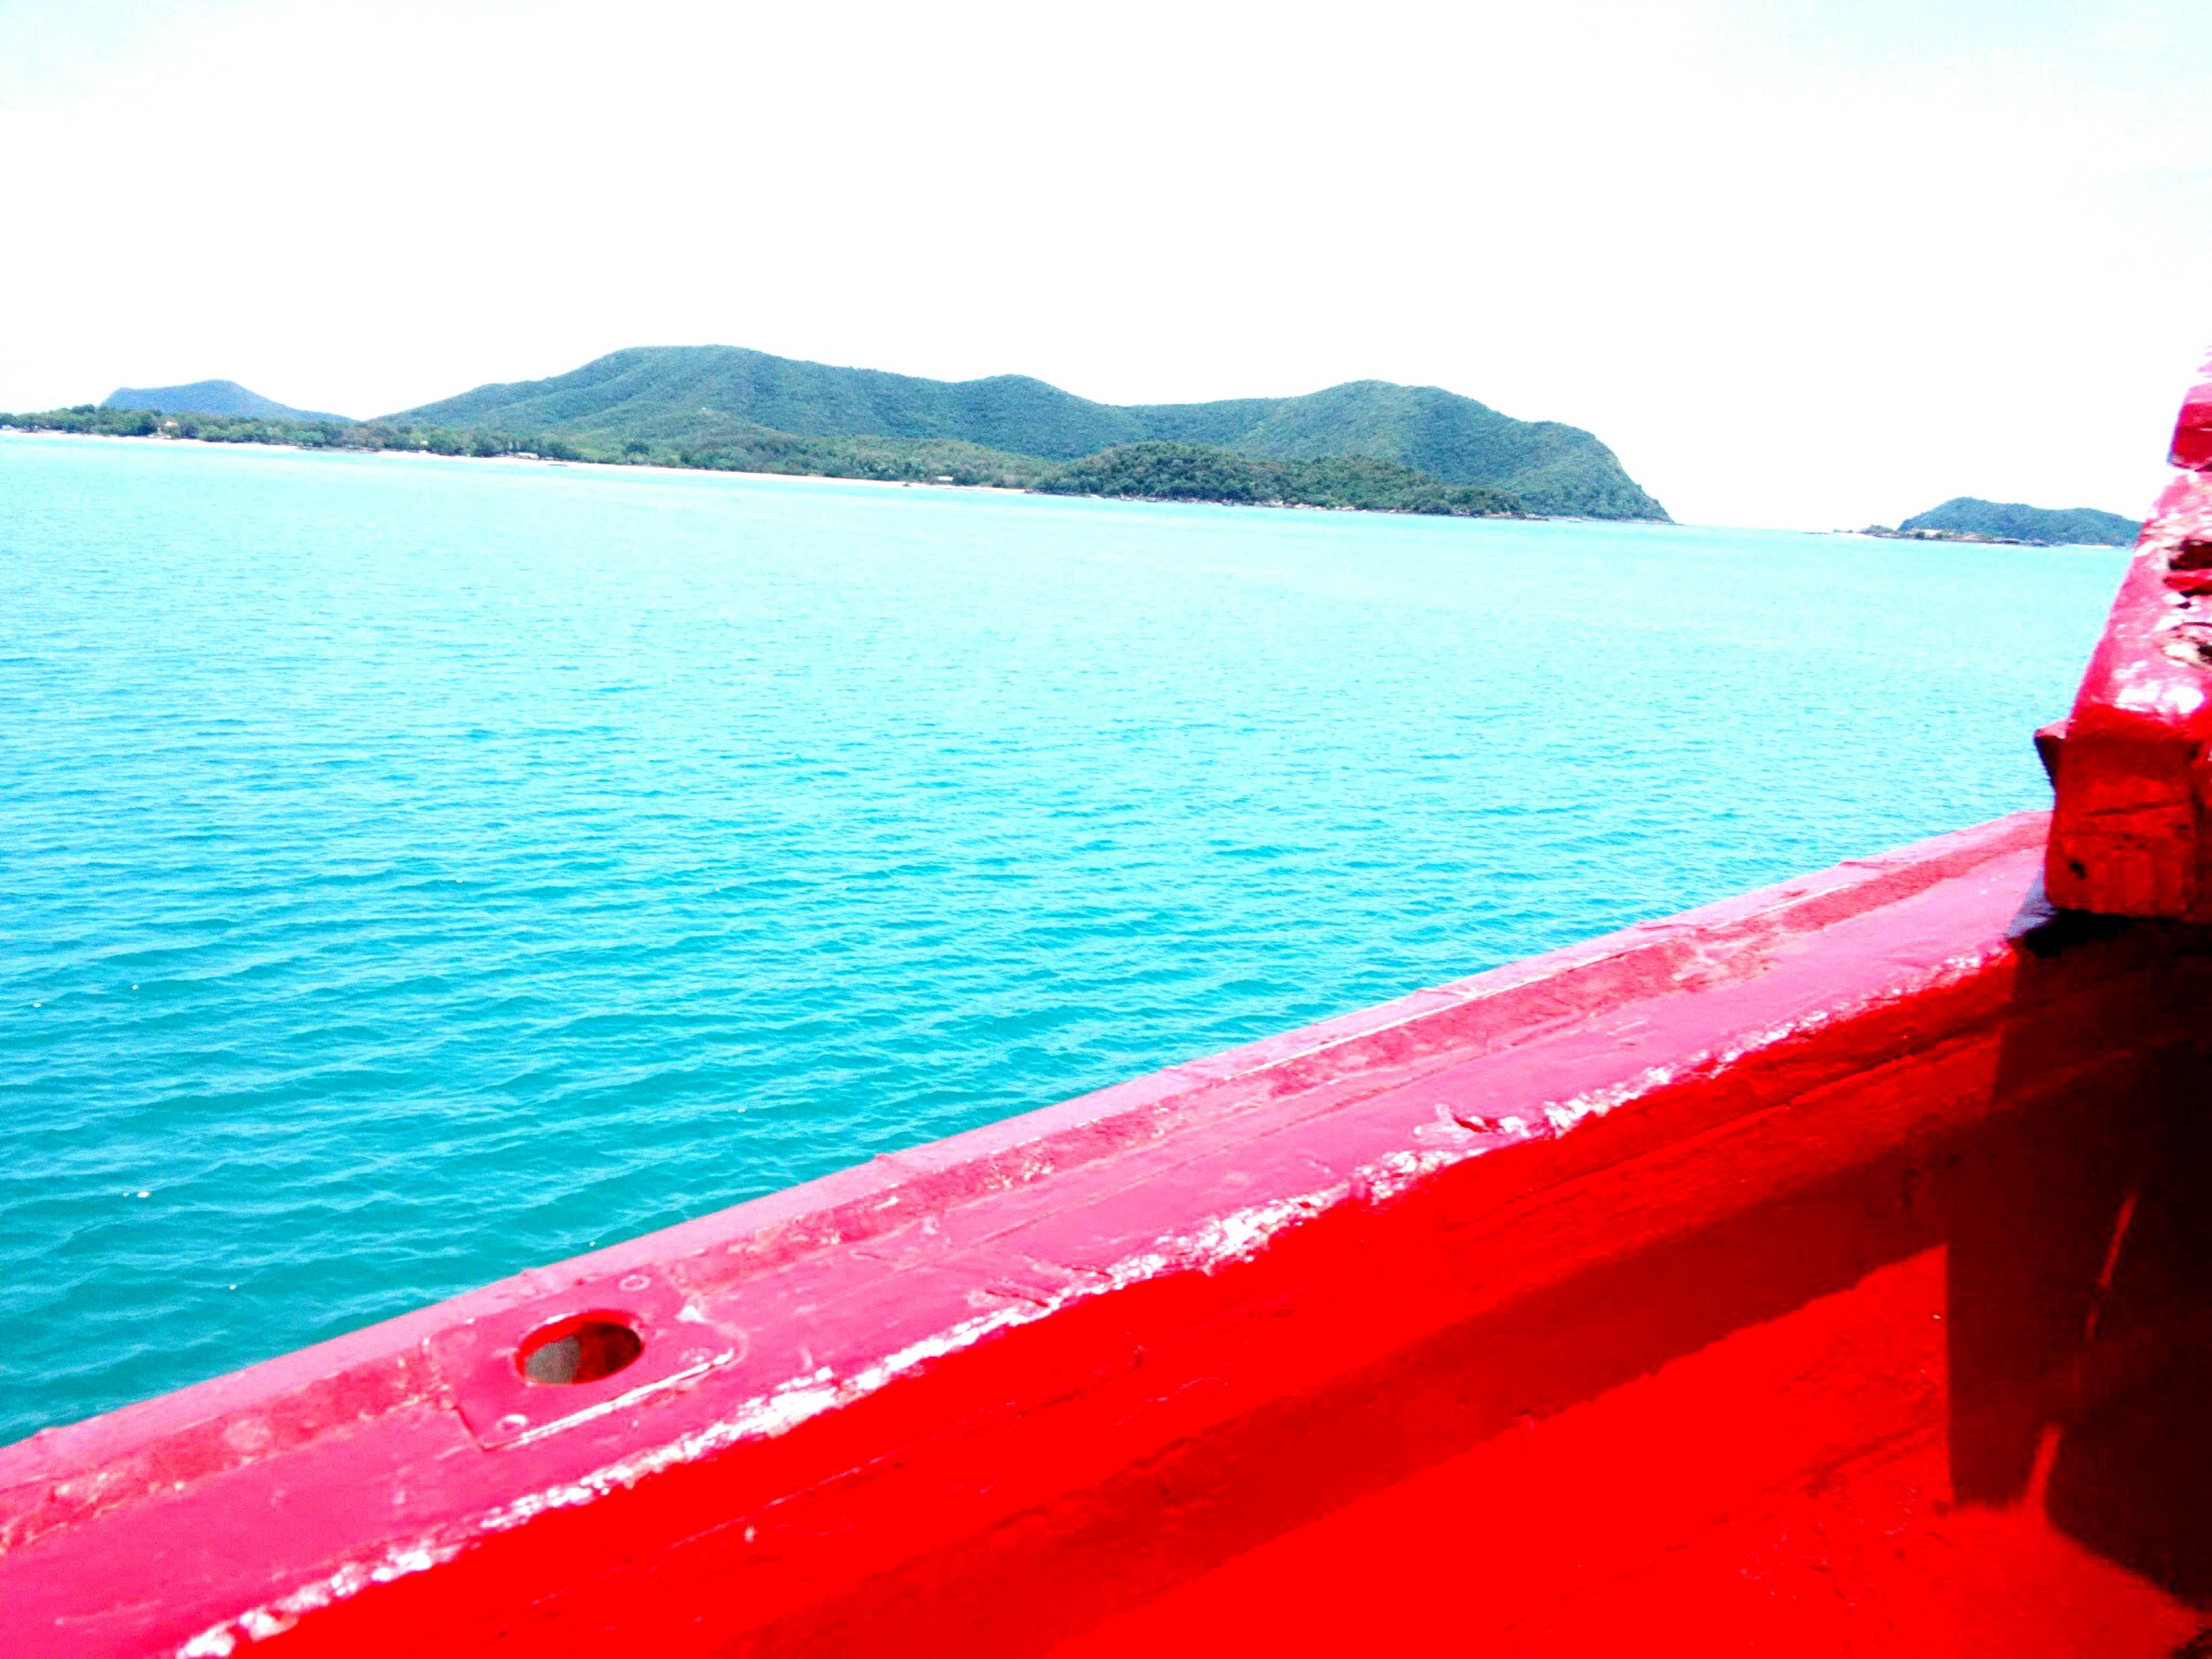 red, water, day, sea, outdoors, no people, transportation, nature, mountain, scenics, sky, nautical vessel, beauty in nature